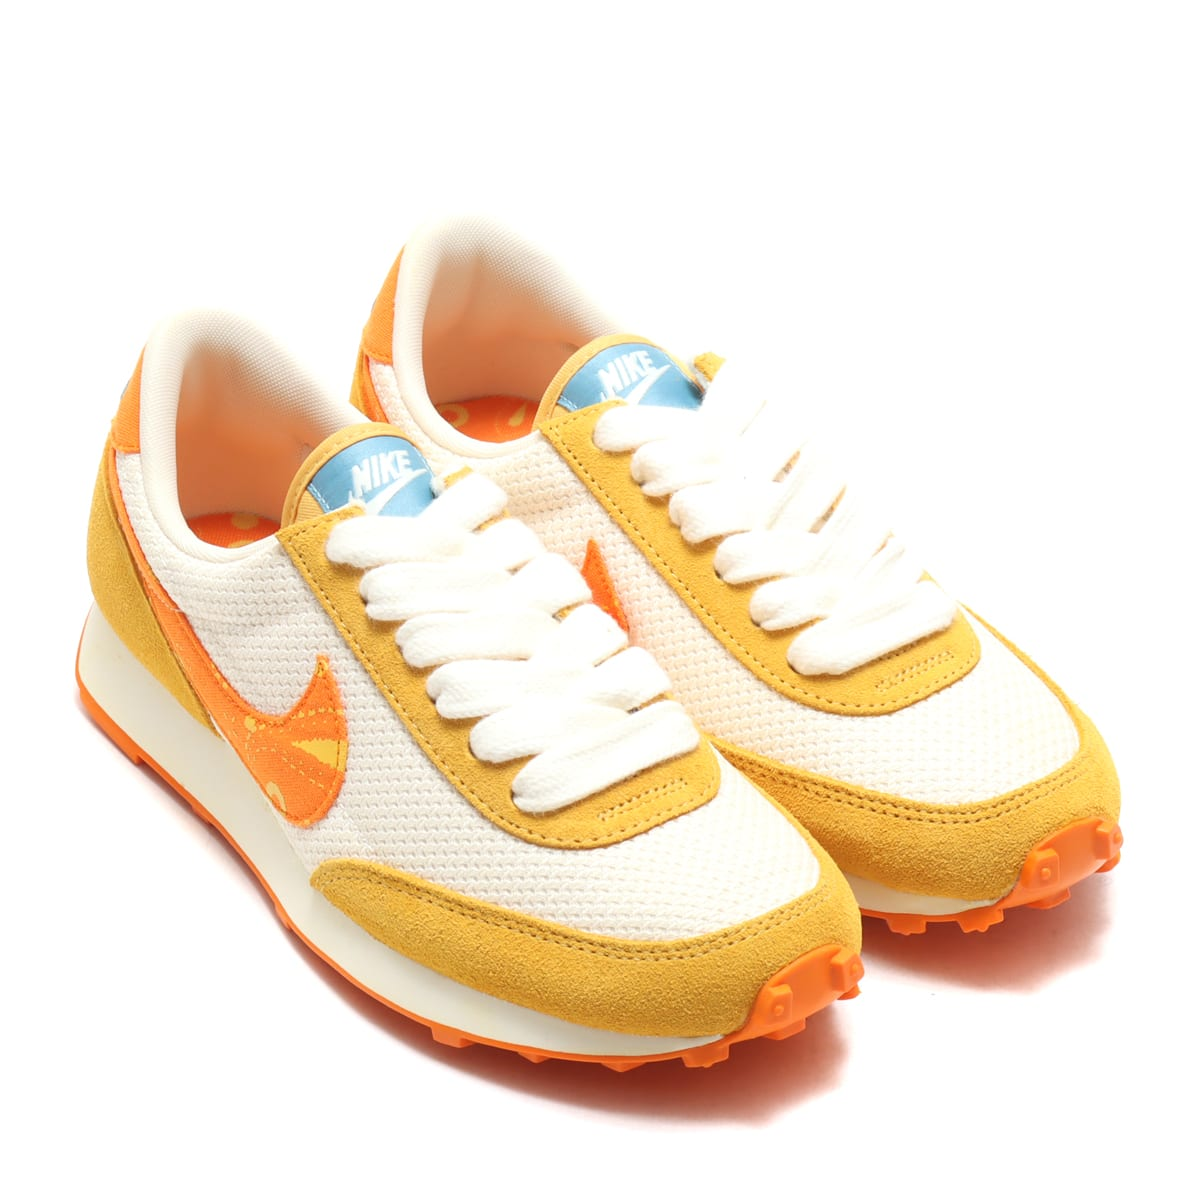 NIKE W DBREAK PALE IVORY/MAGMA ORANGE-SOLAR FLARE 21SU-I_photo_large